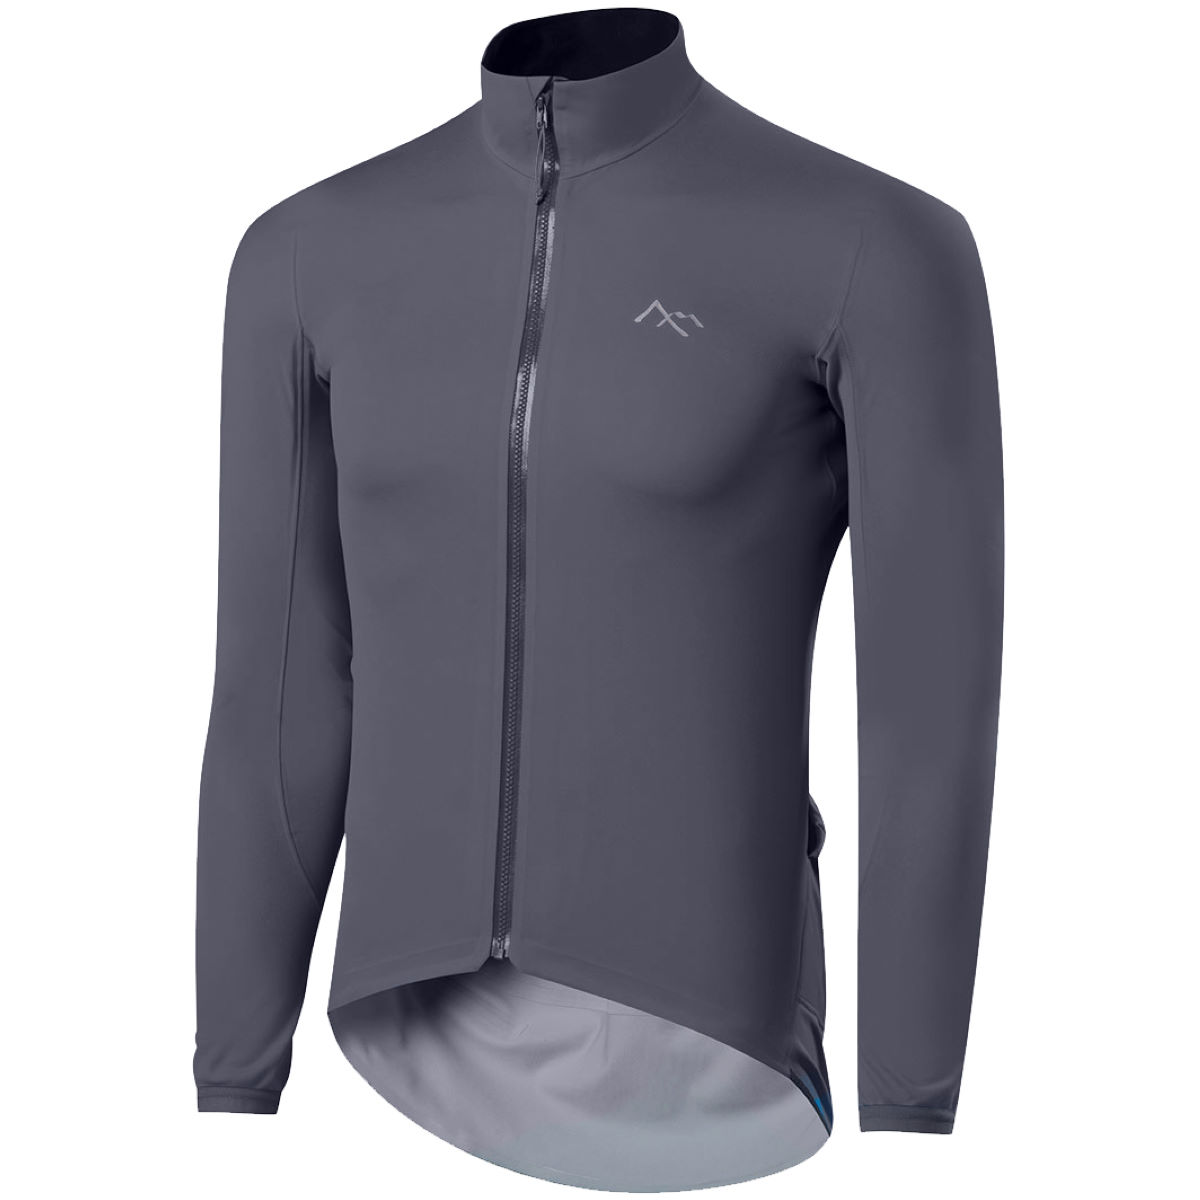 Maillot 7Mesh Corsa Windstopper Softshell - S Ash Coupe-vents vélo